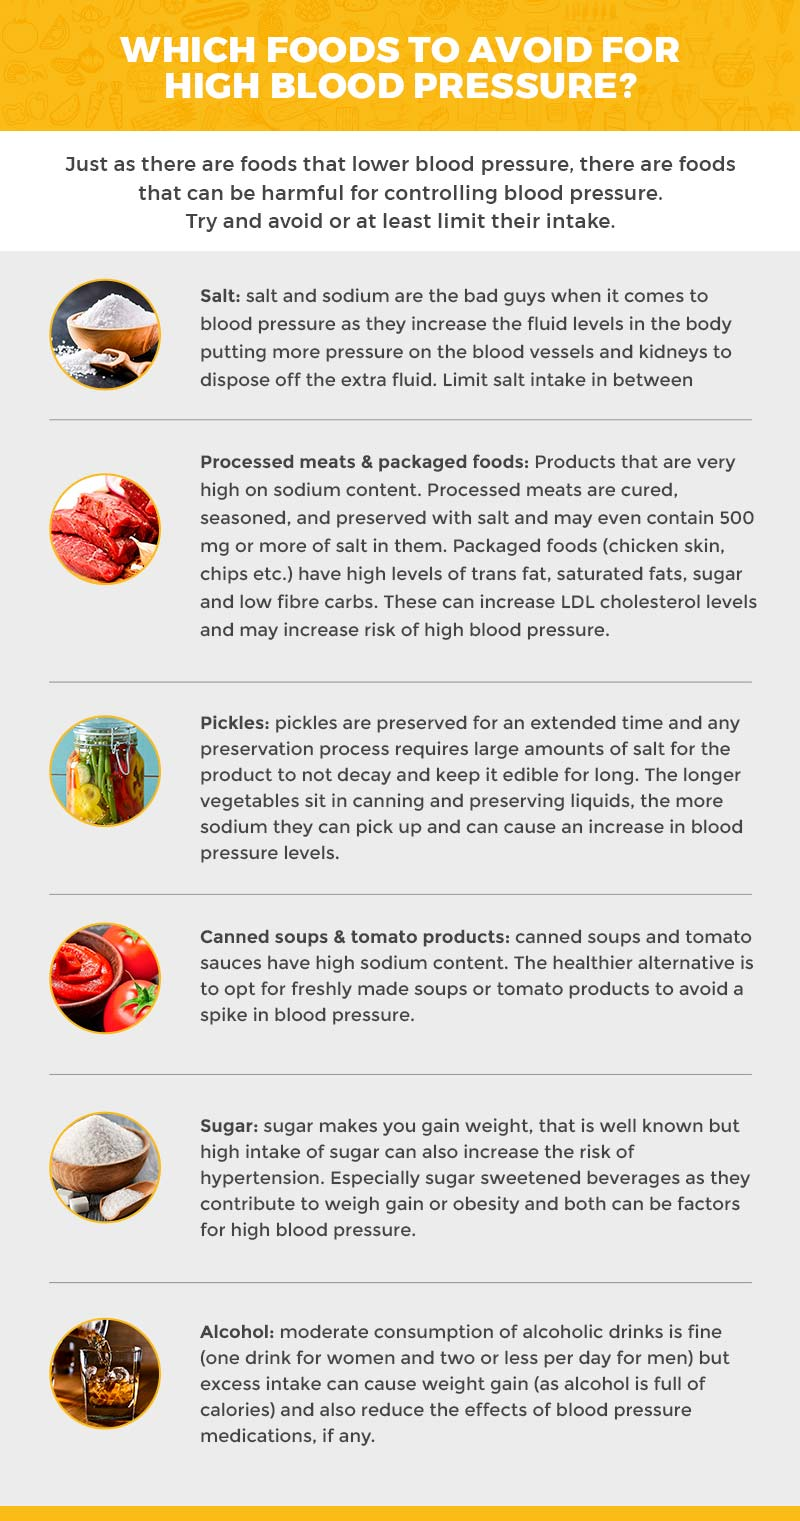 Food to reduce high blood pressure